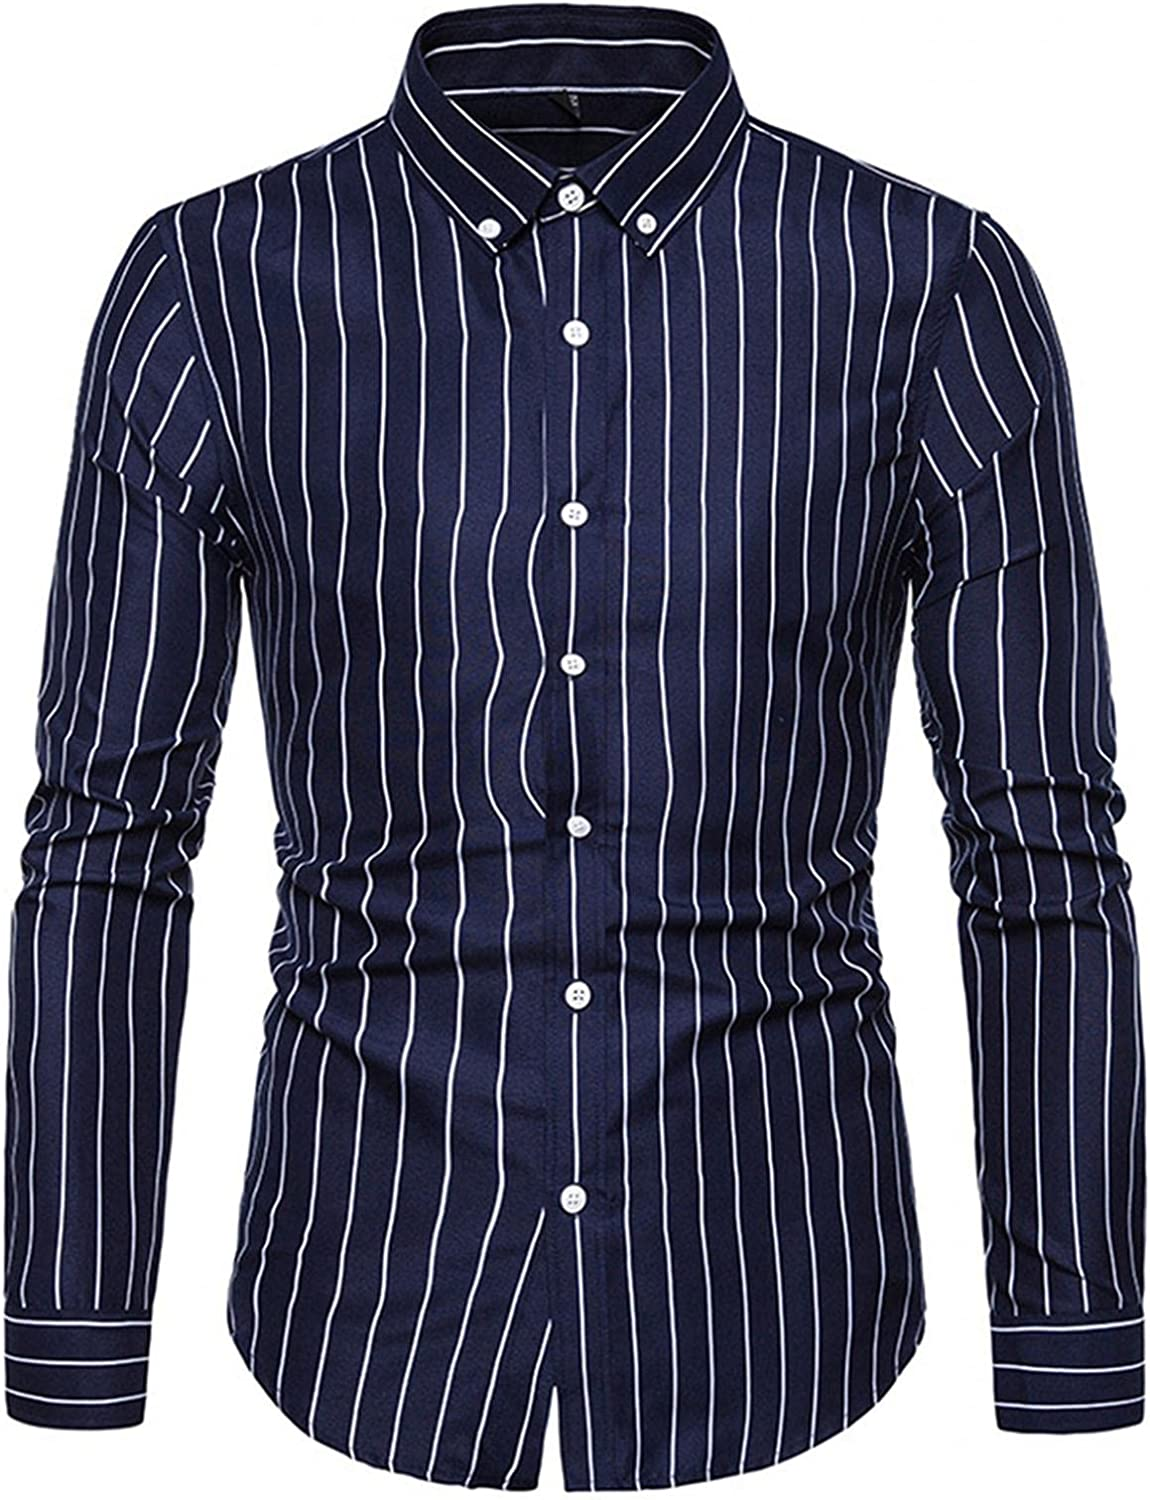 FUNEY Mens Slim Fit Dress Shirt Classic Western Plaid Stretch Vertical Striped Solid Long Sleeve Collar Button Down Shirt